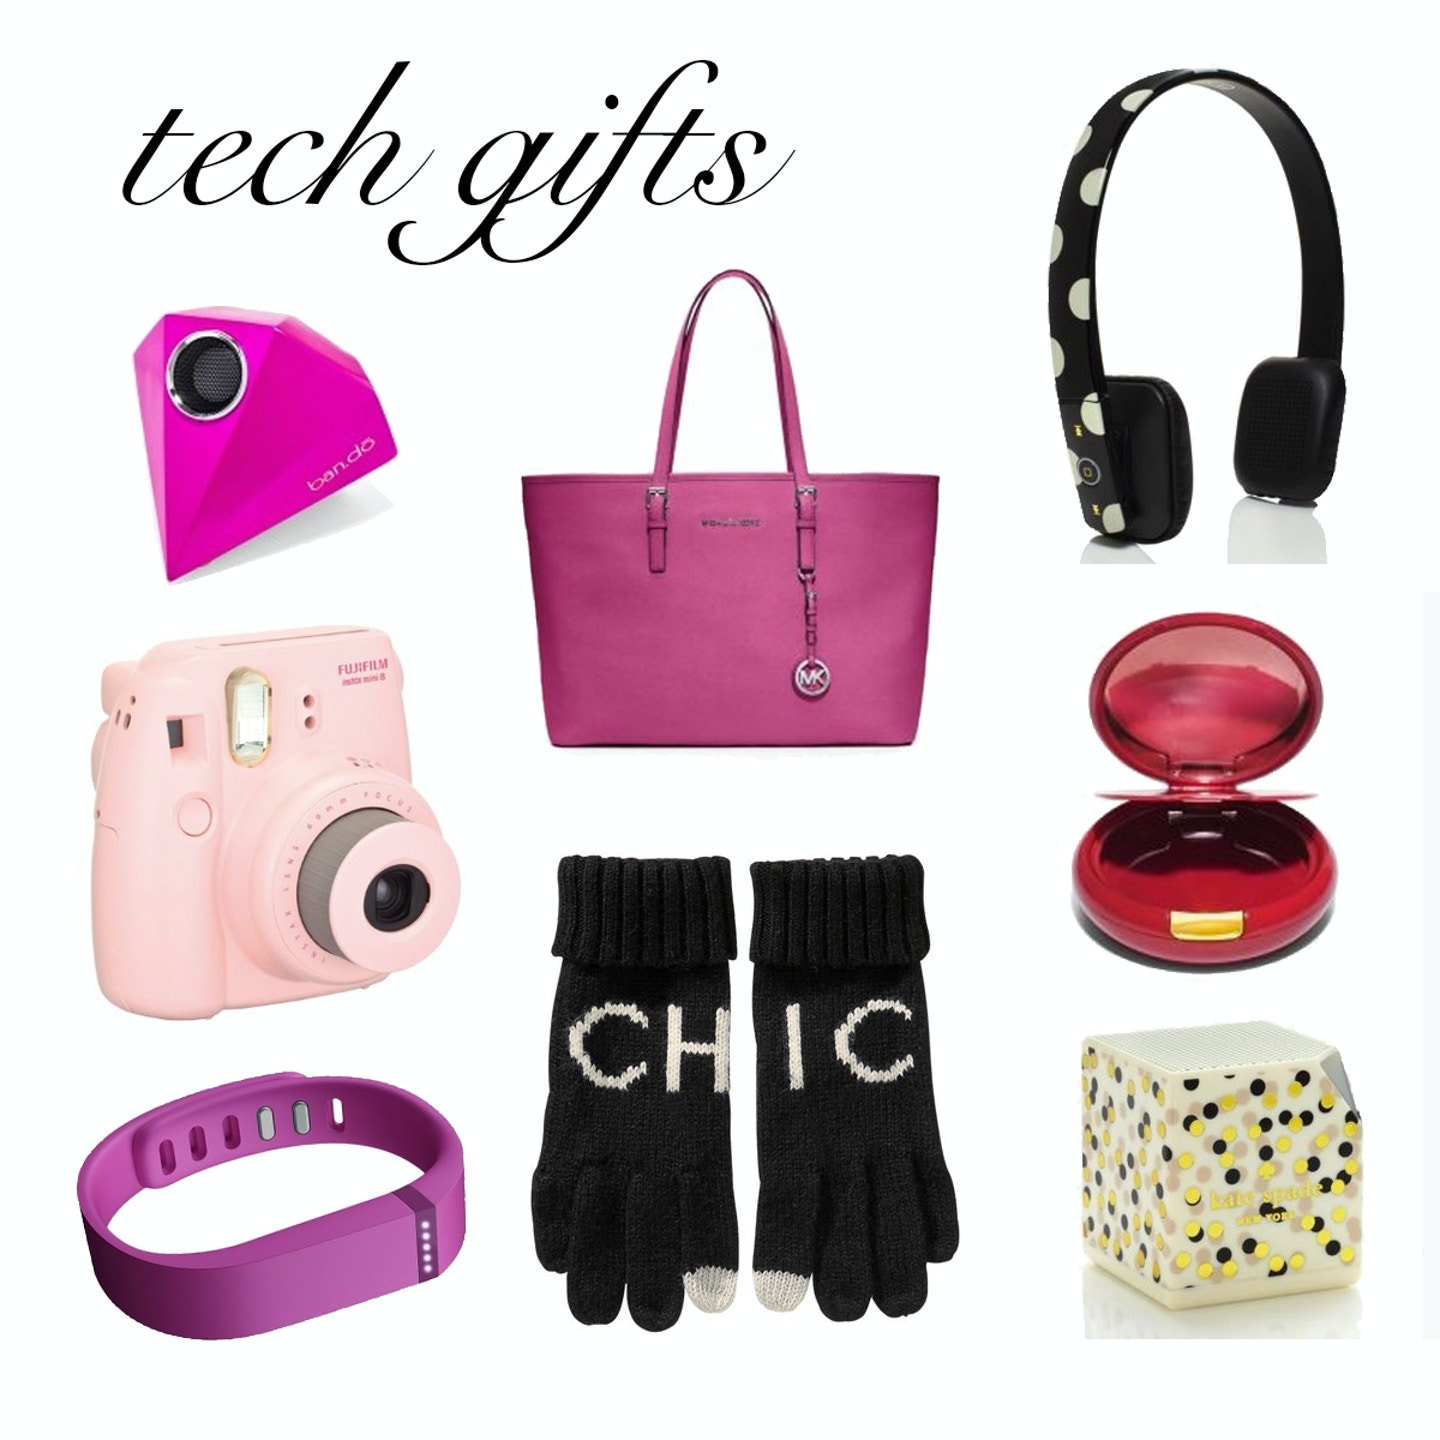 tech gift ideas for her